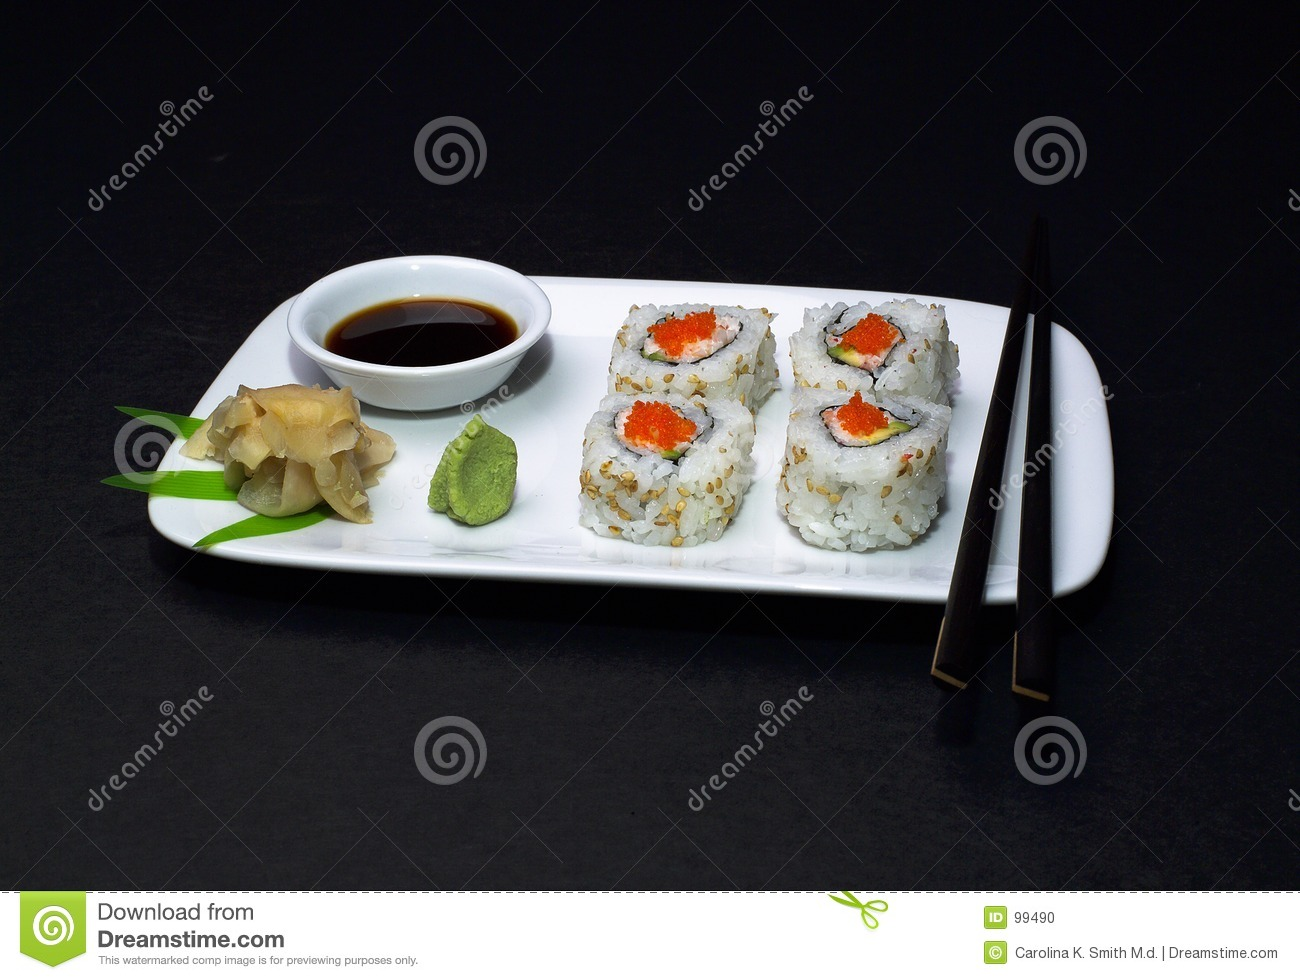 Sushi california roll stock photo image 99490 for 99490